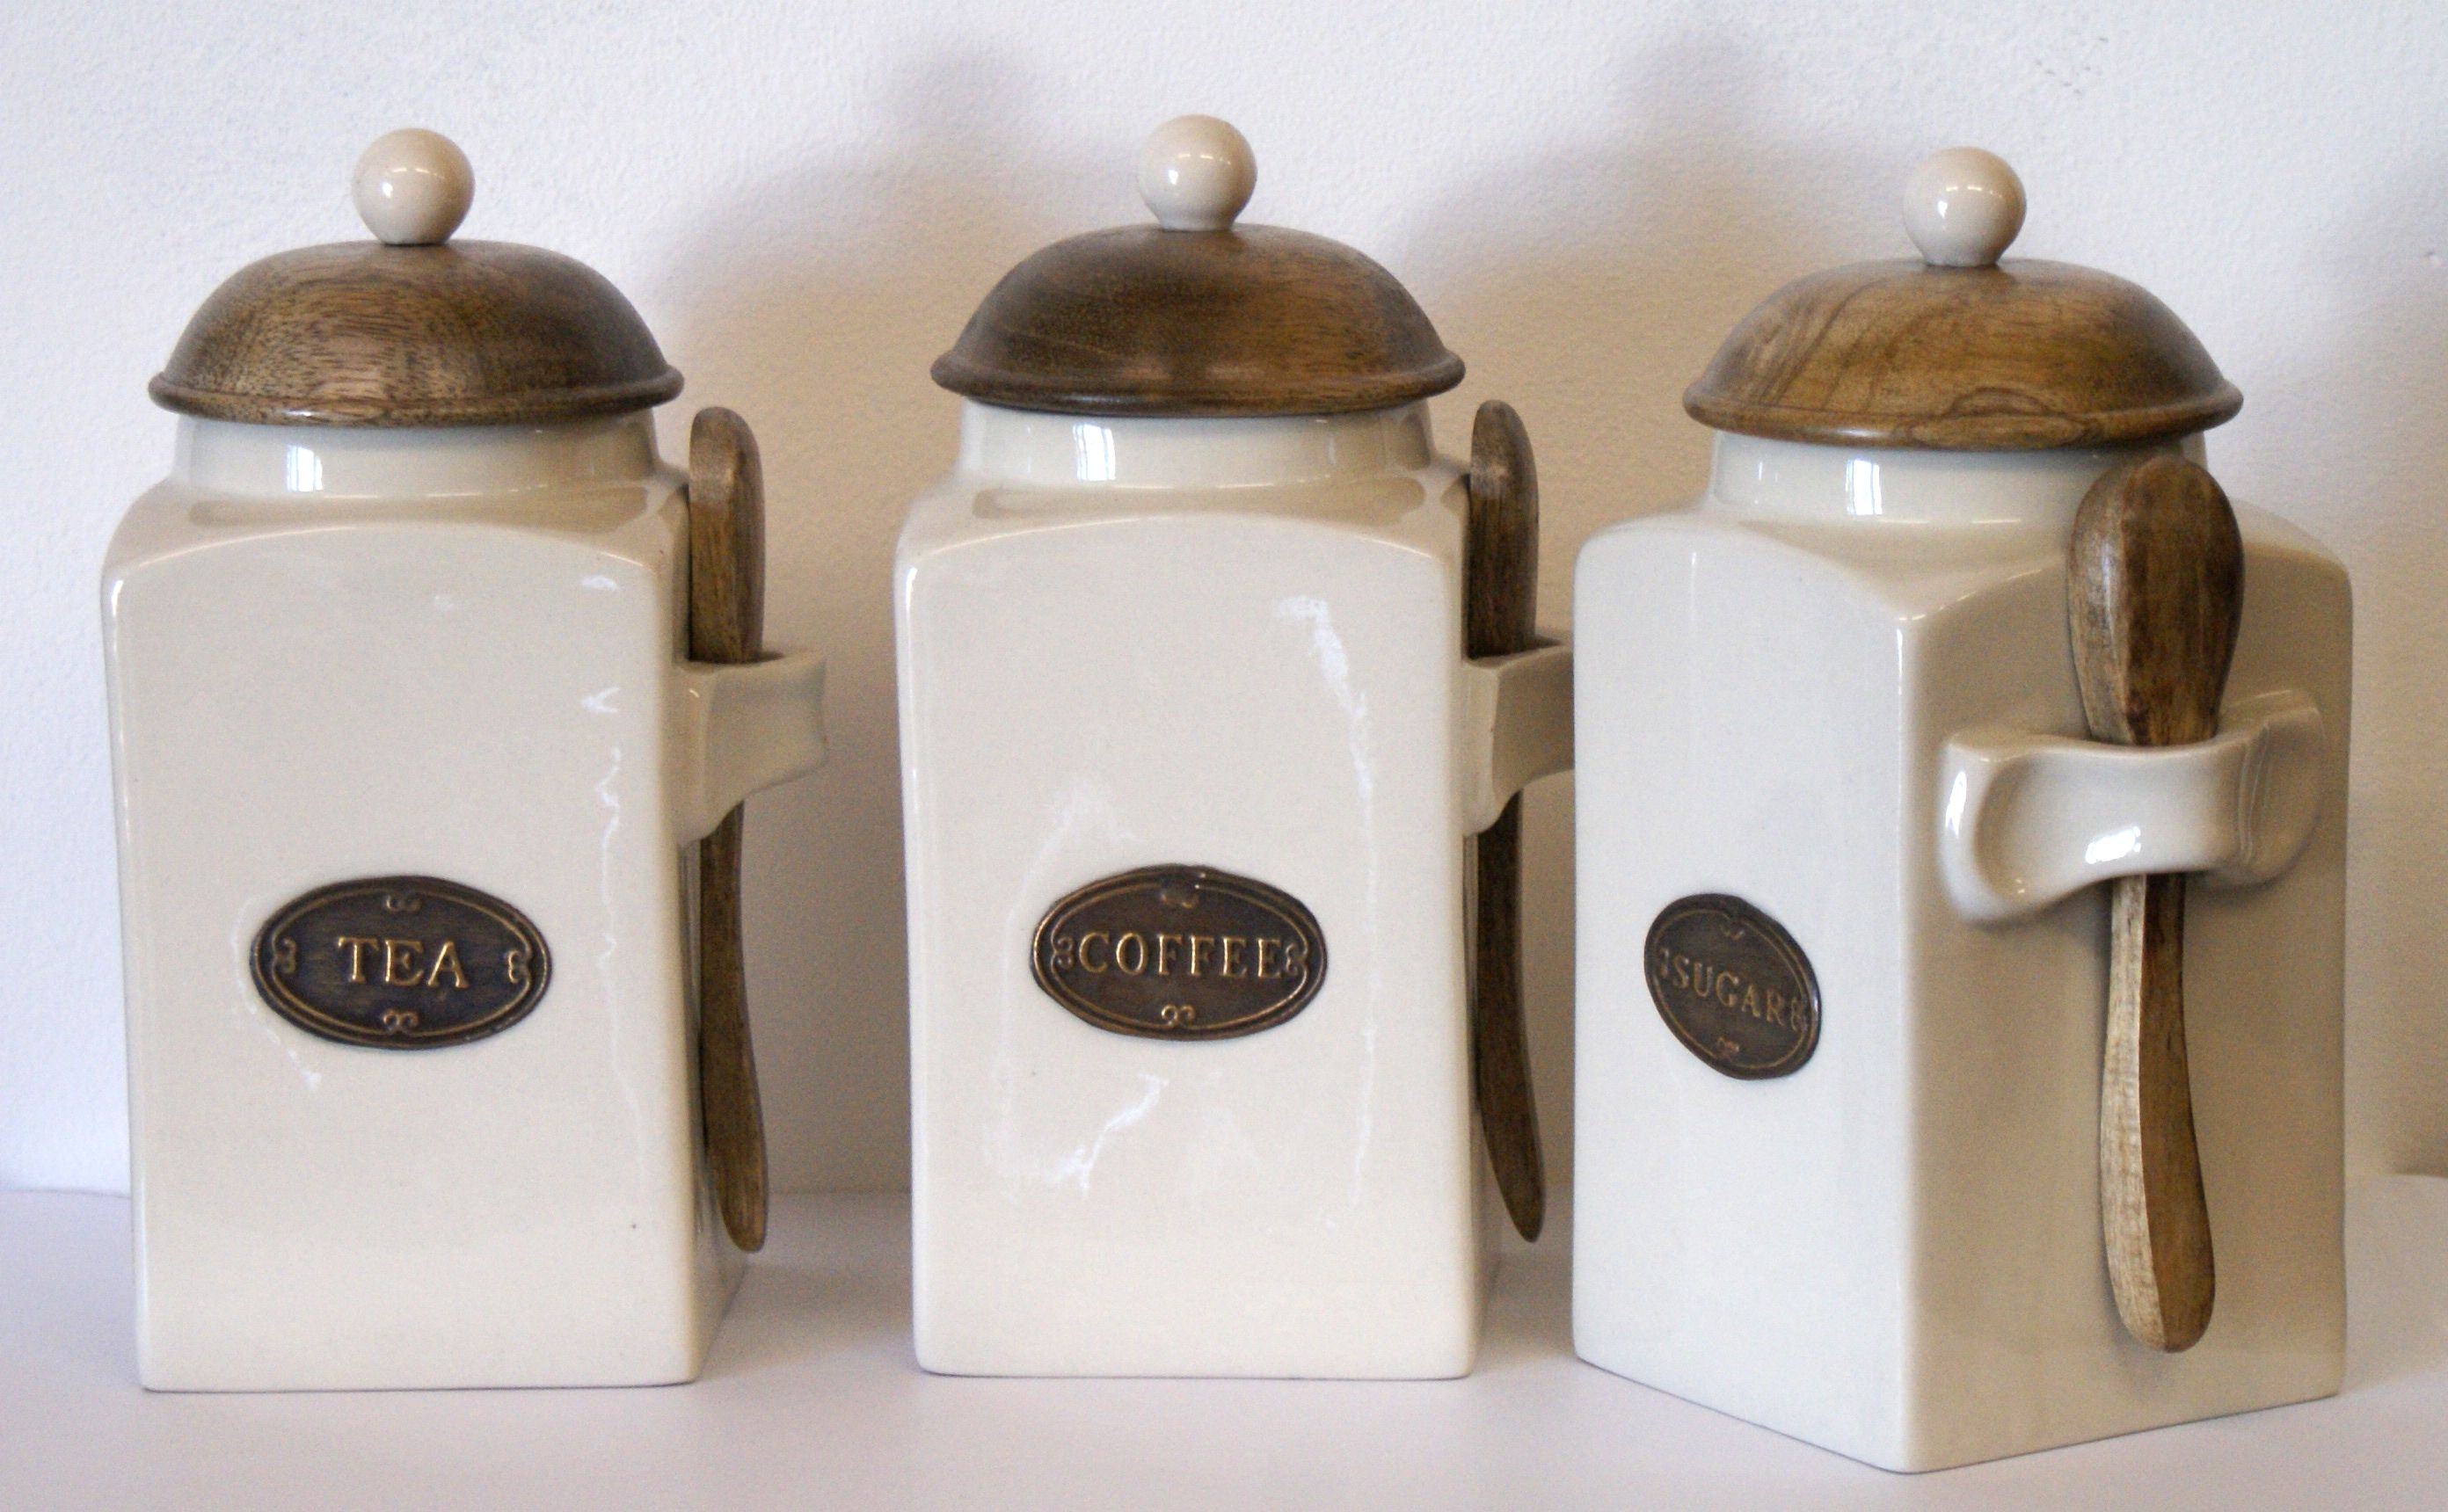 kitchen canisters ceramic swinging doors country tea coffee and sugar each with a